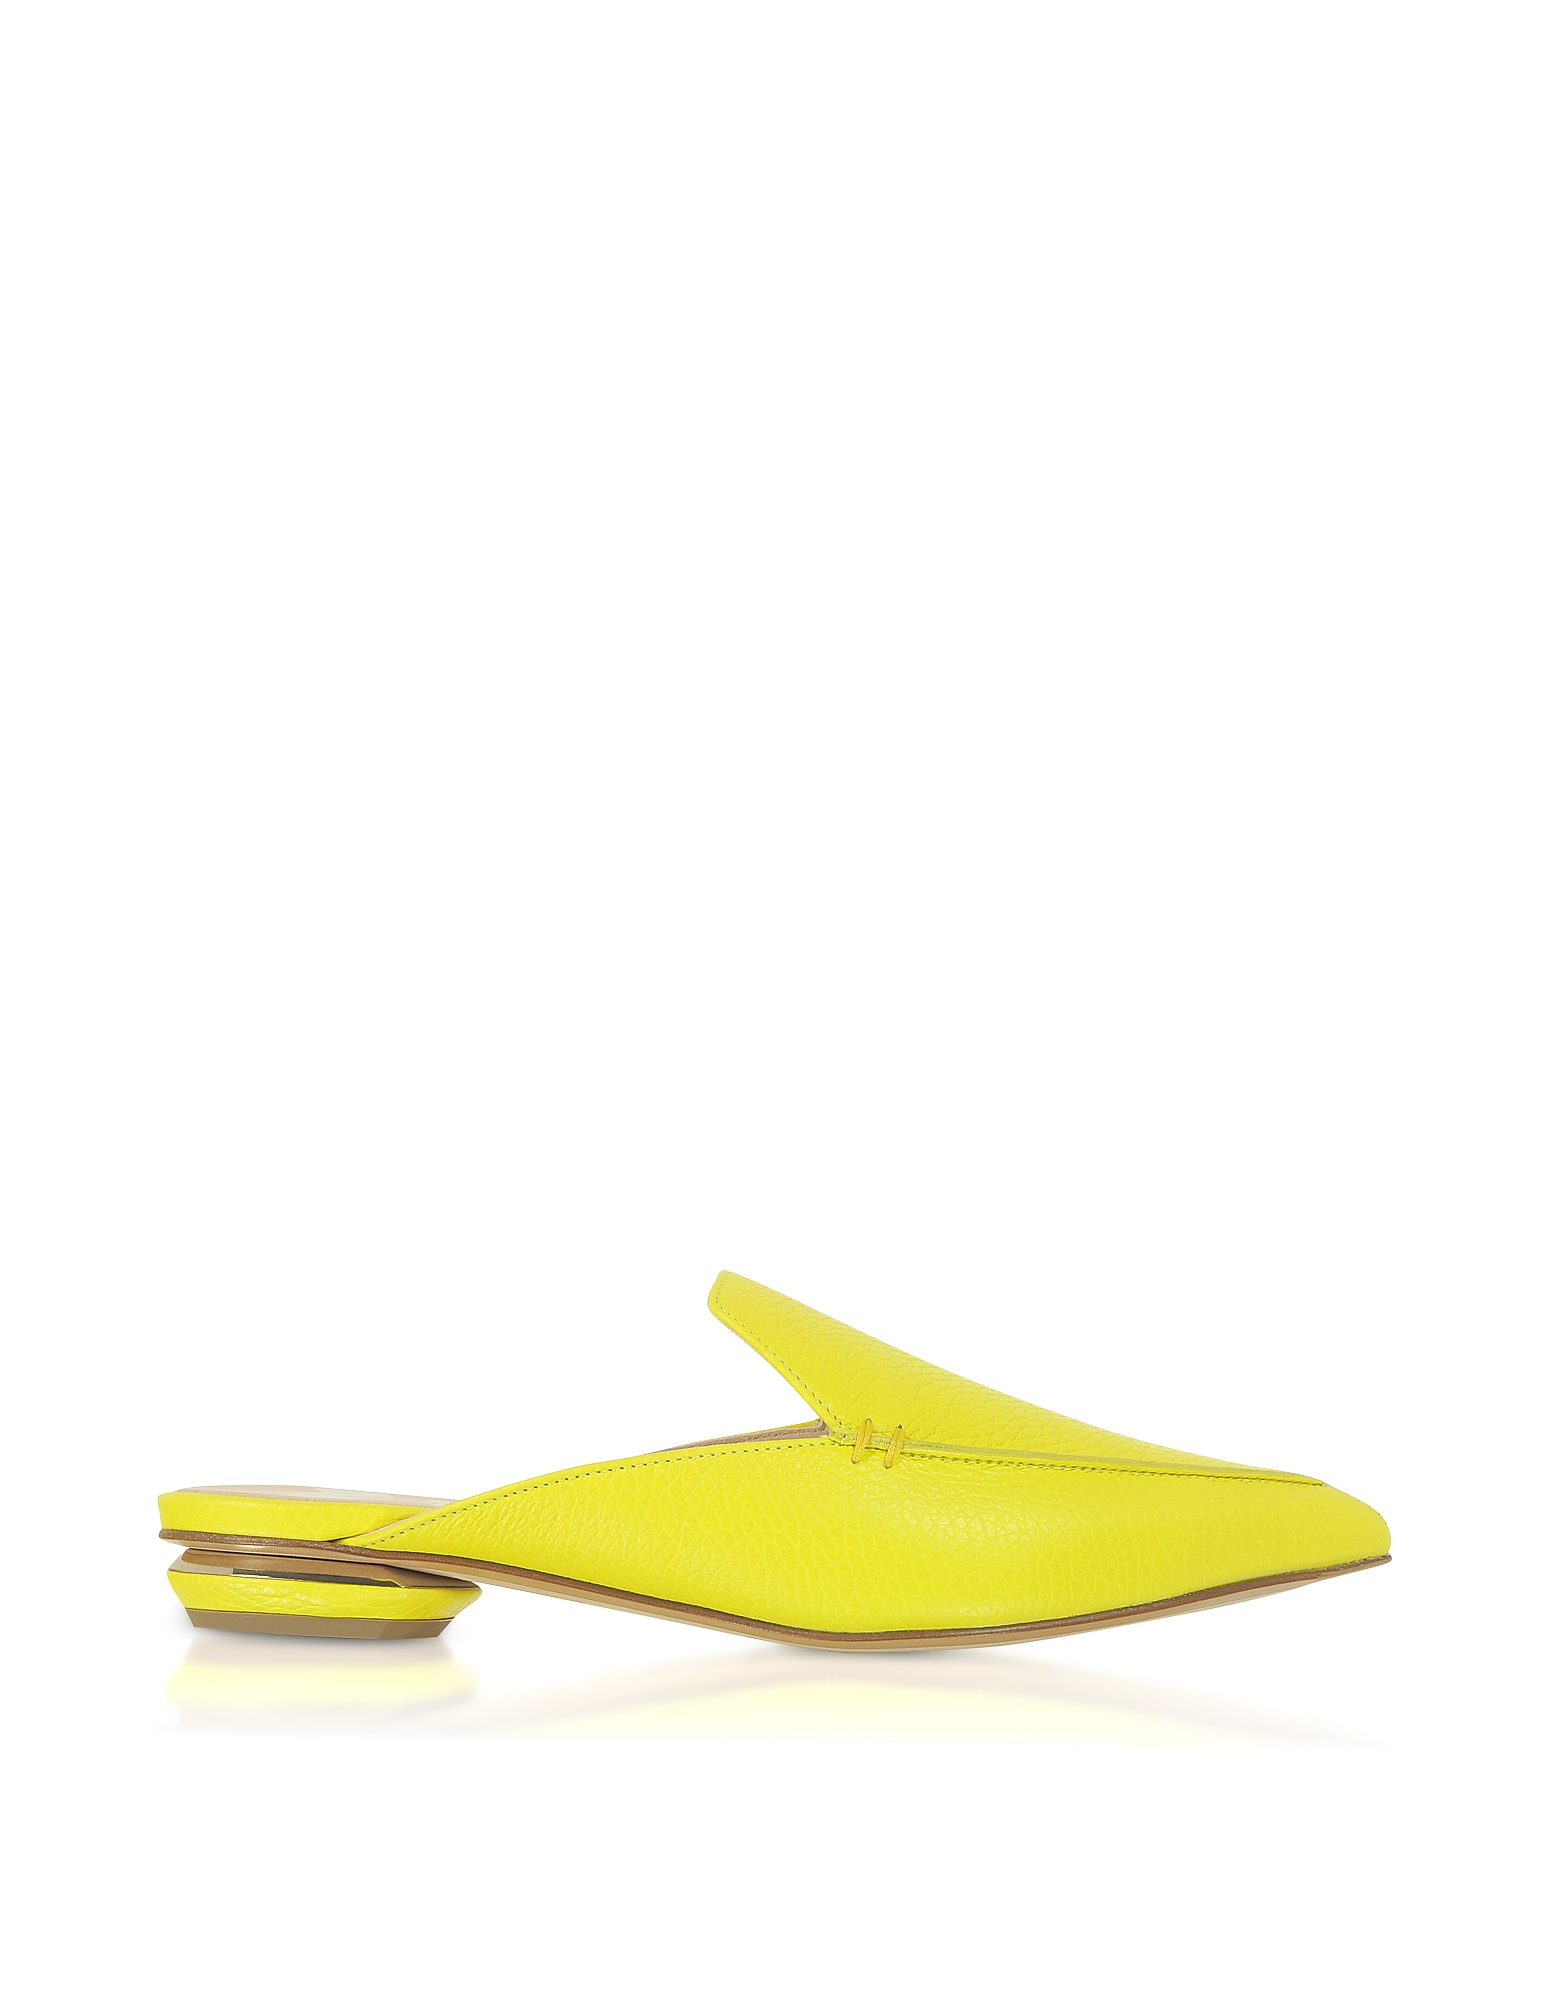 Nicholas Kirkwood Designer Shoes, Fluo Yellow 18mm Beya Flat Mules